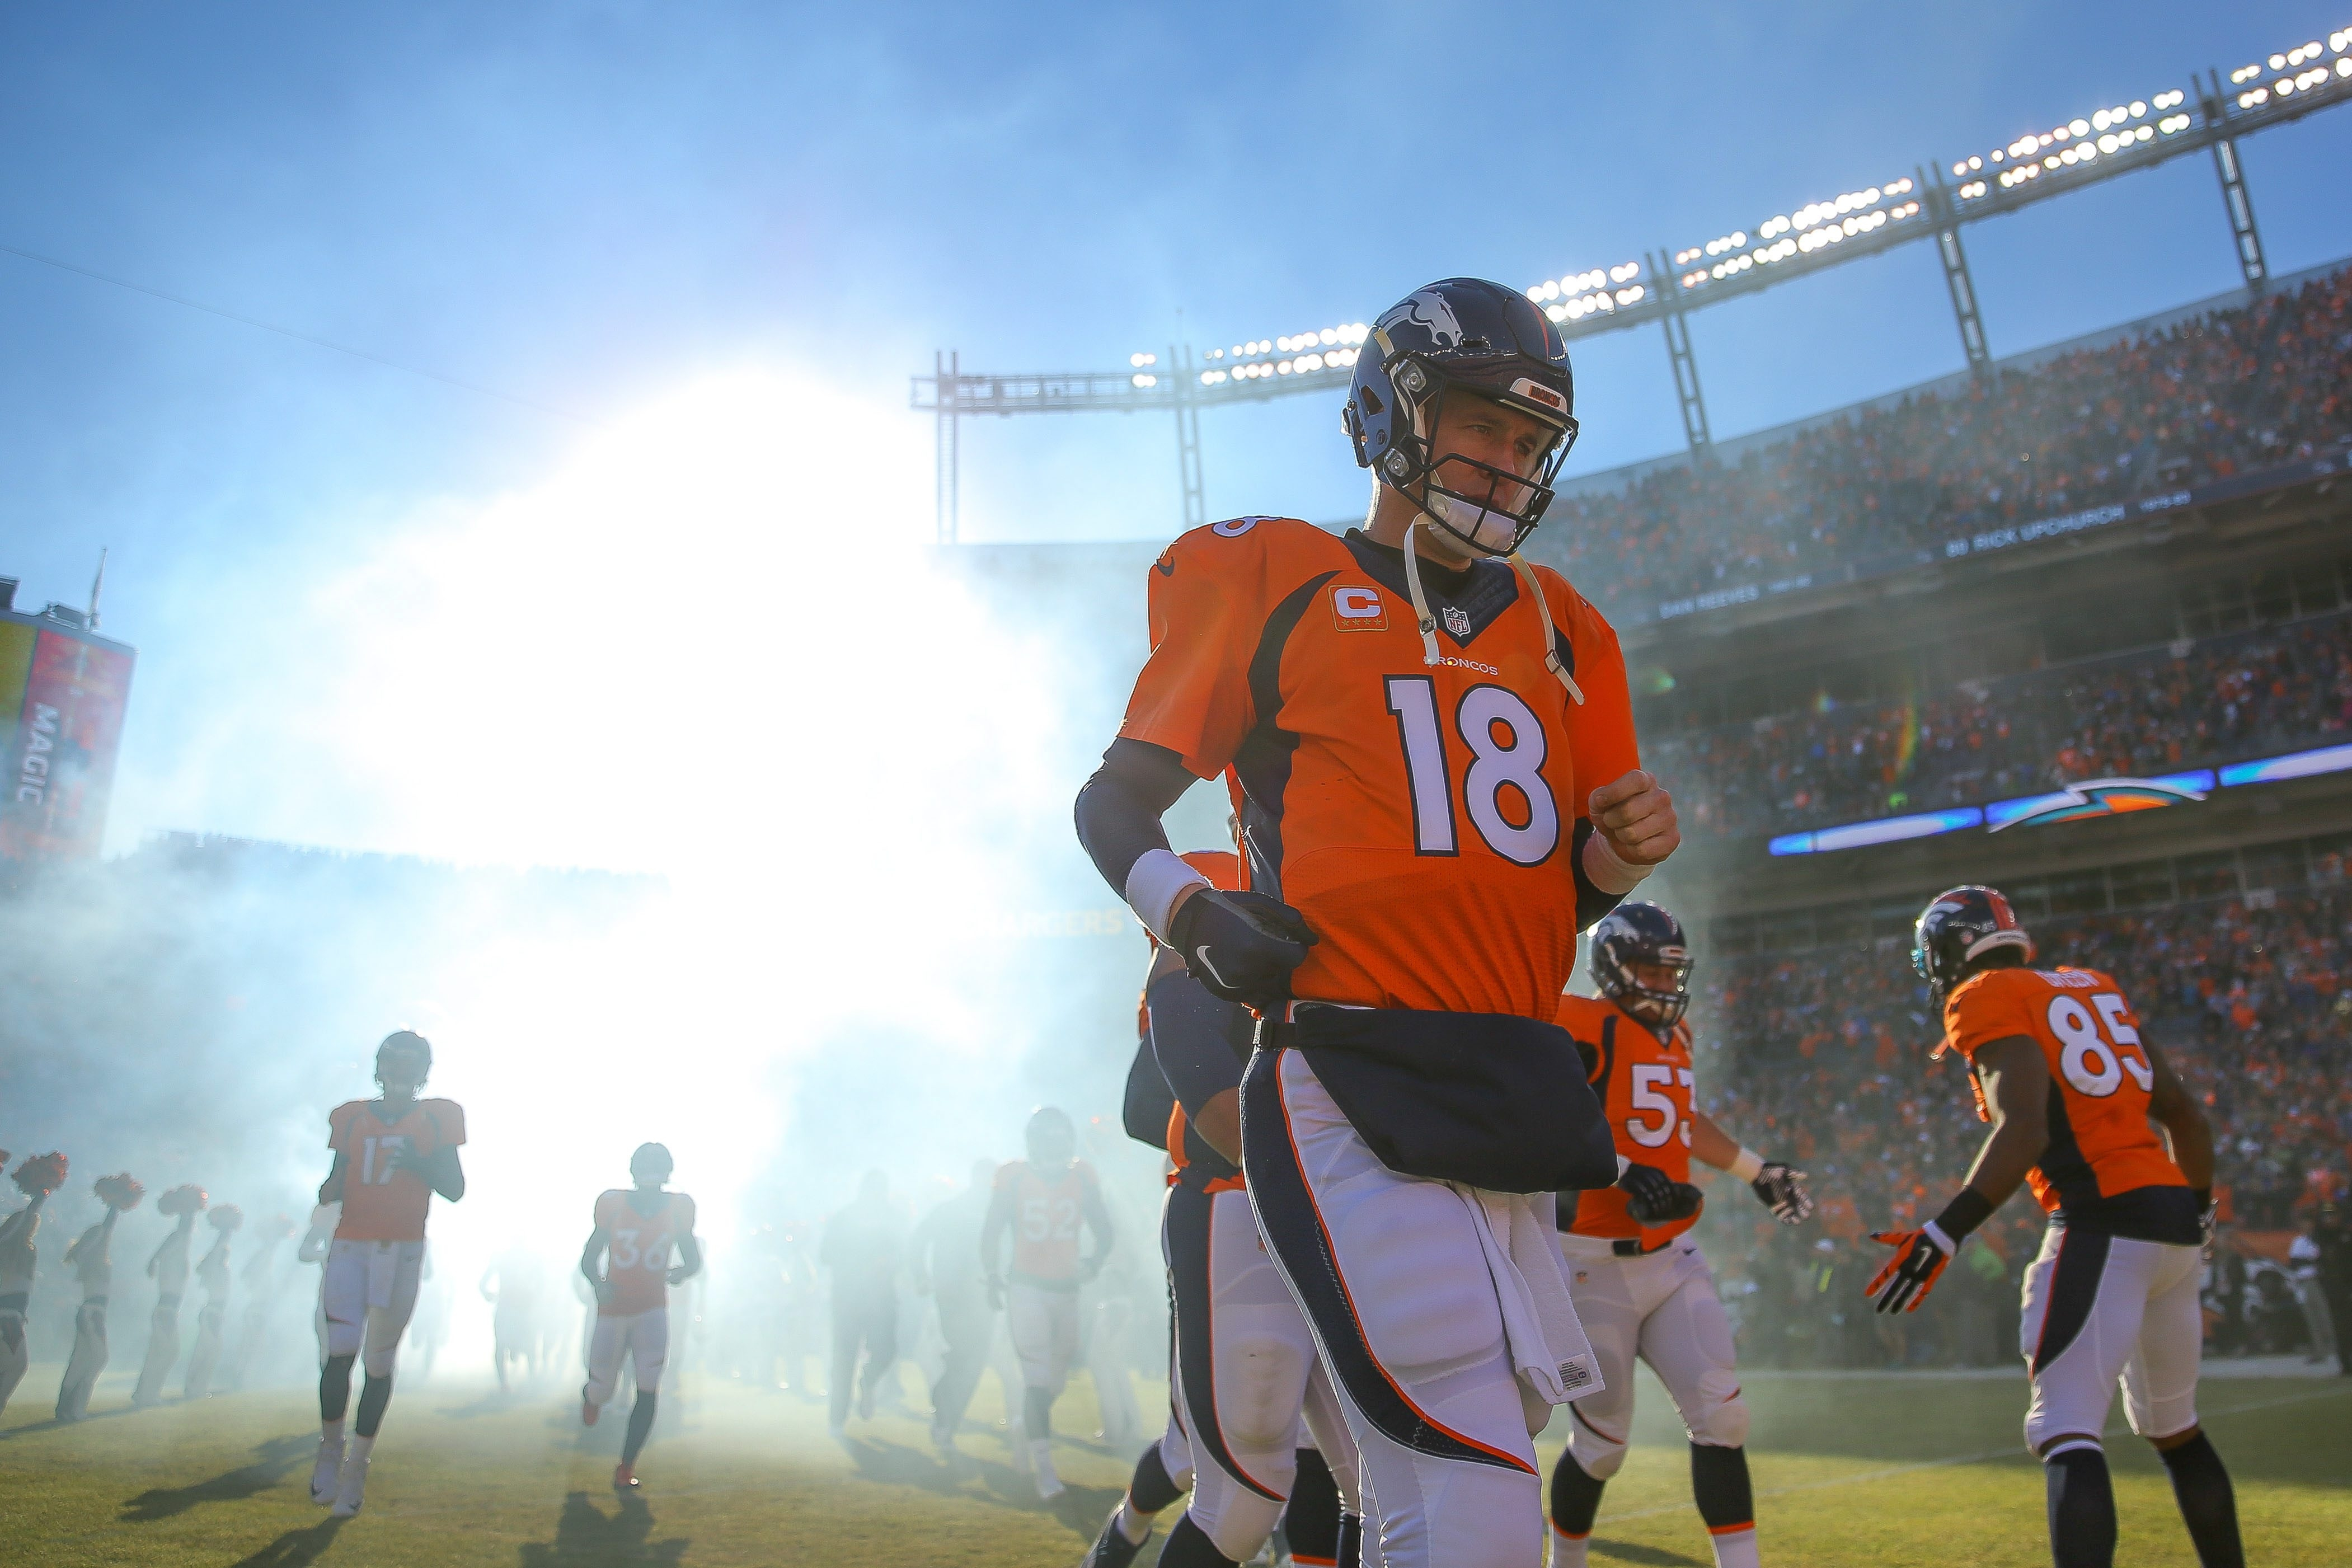 Win or lose, Peyton Manning should call it a career after Super Bowl 50.